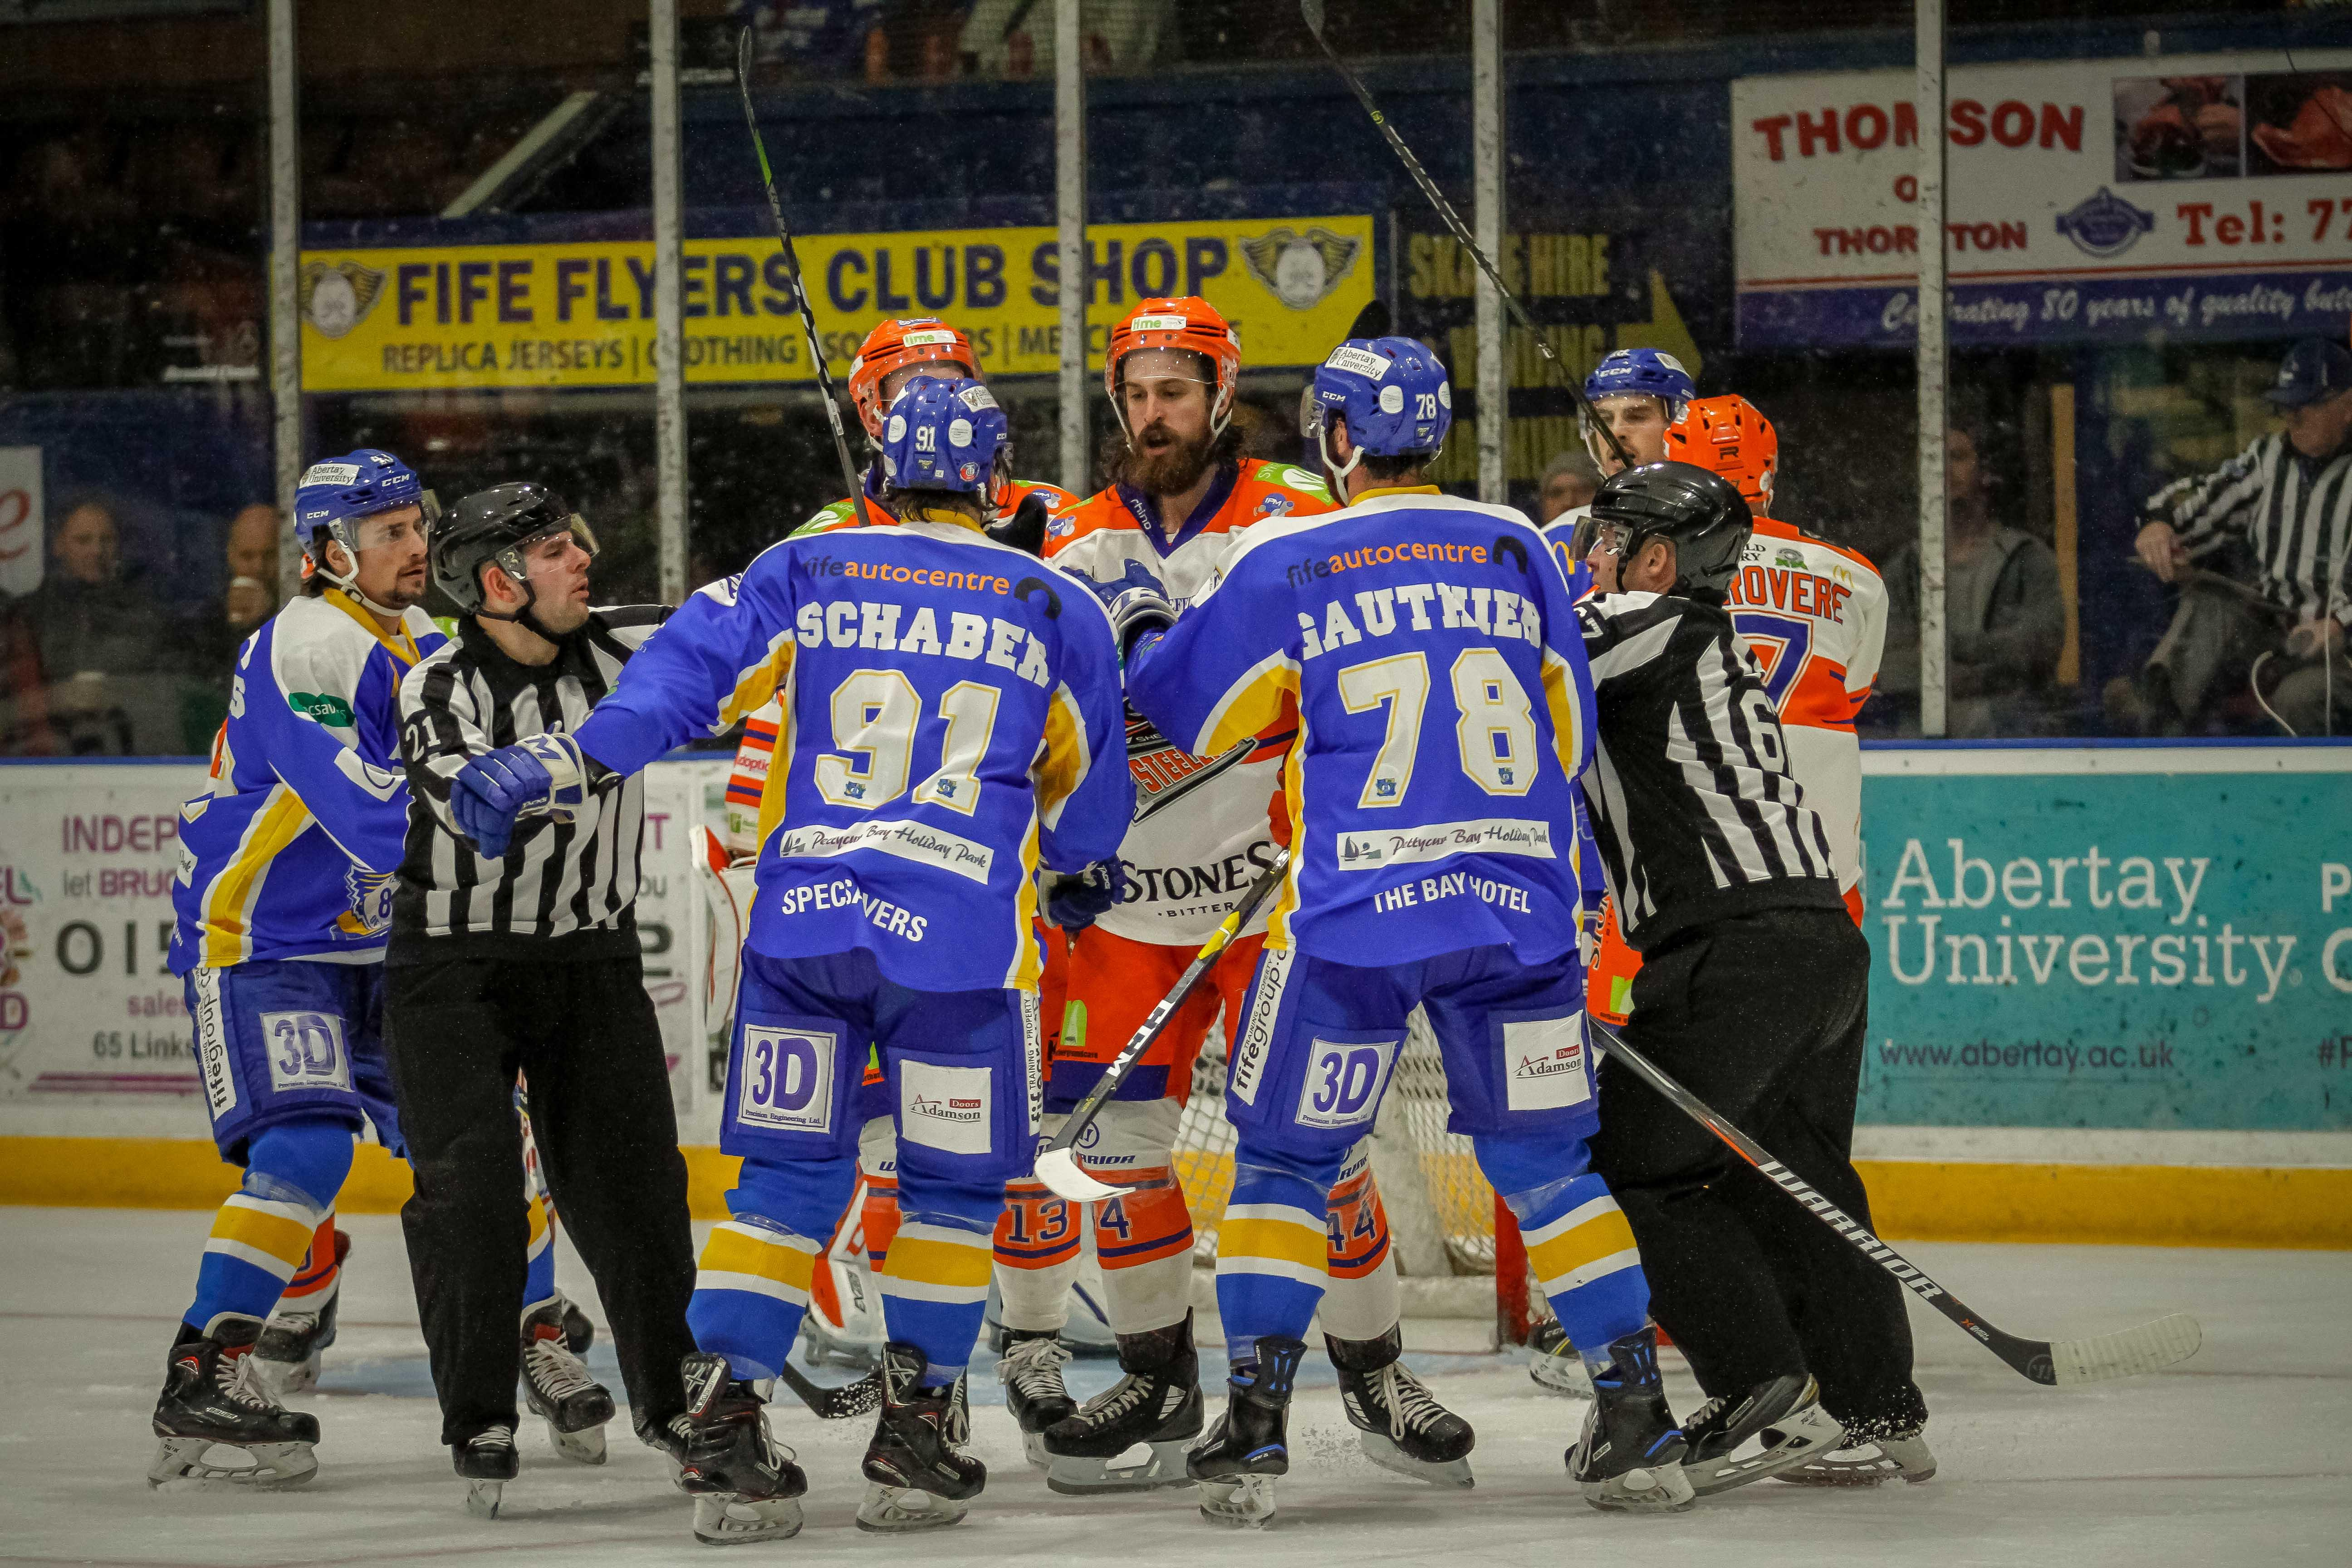 Sheffield Steelers Summer Transfer Activity And Other Elite Ice